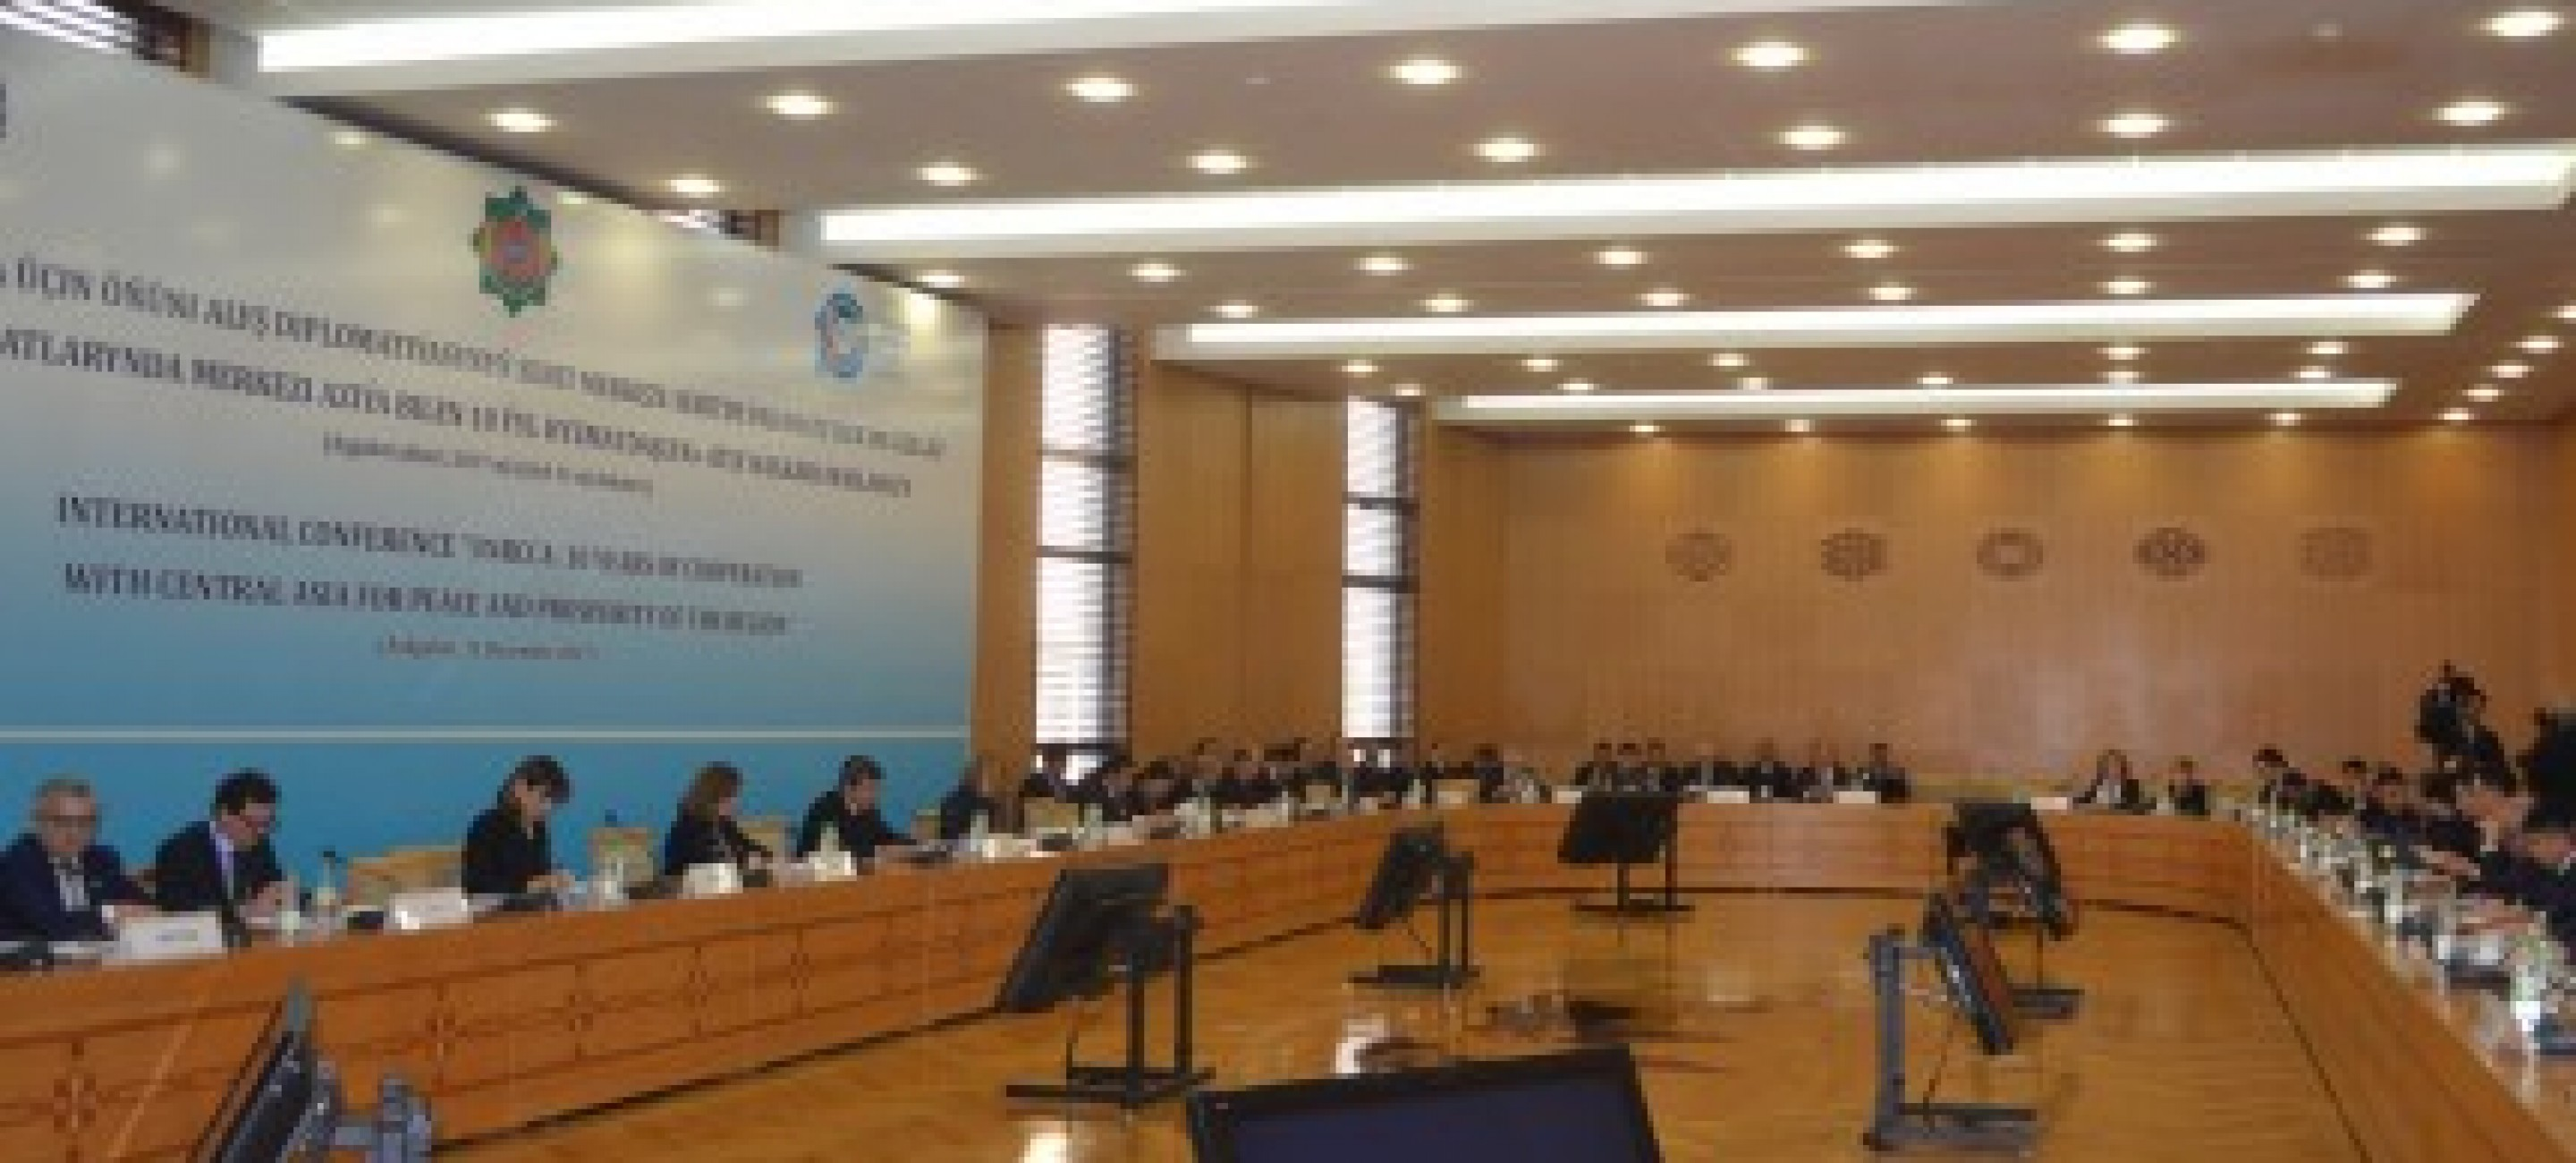 "INTERNATIONAL CONFERENCE ""UN REGIONAL CENTER FOR PREVENTIVE DIPLOMACY FOR CENTRAL ASIA: 10 YEARS OF COOPERATION WITH CENTRAL ASIA FOR PEACE AND PROSPERITY OF THE REGION""HELD AT THE MFA OF TURKMENISTAN"